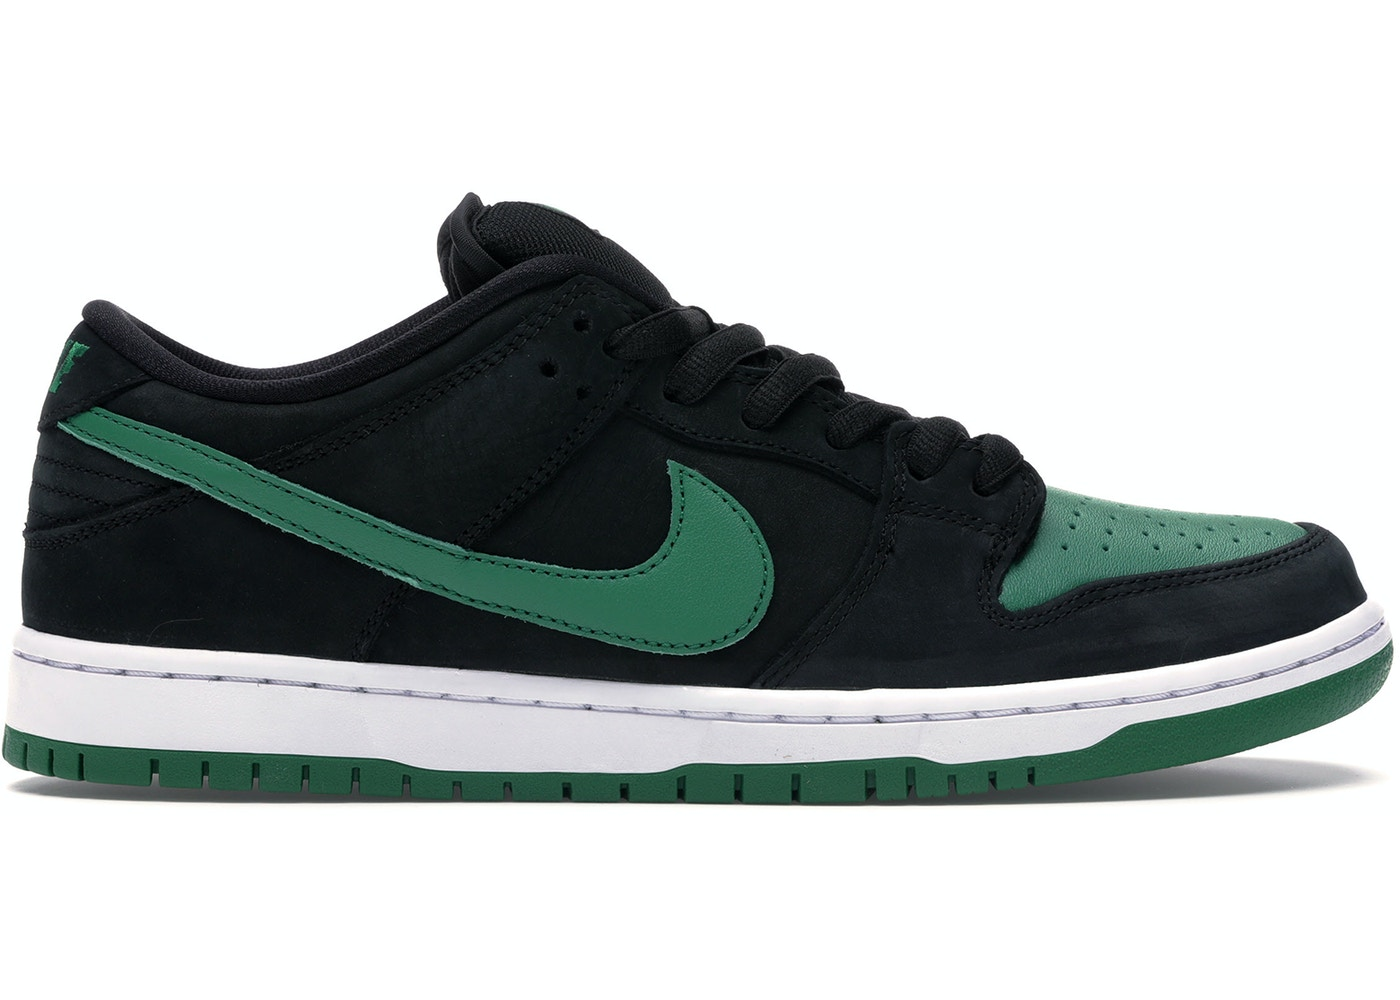 big sale dea5f 6e1f3 Nike SB Dunk Low Pro Black Pine Green